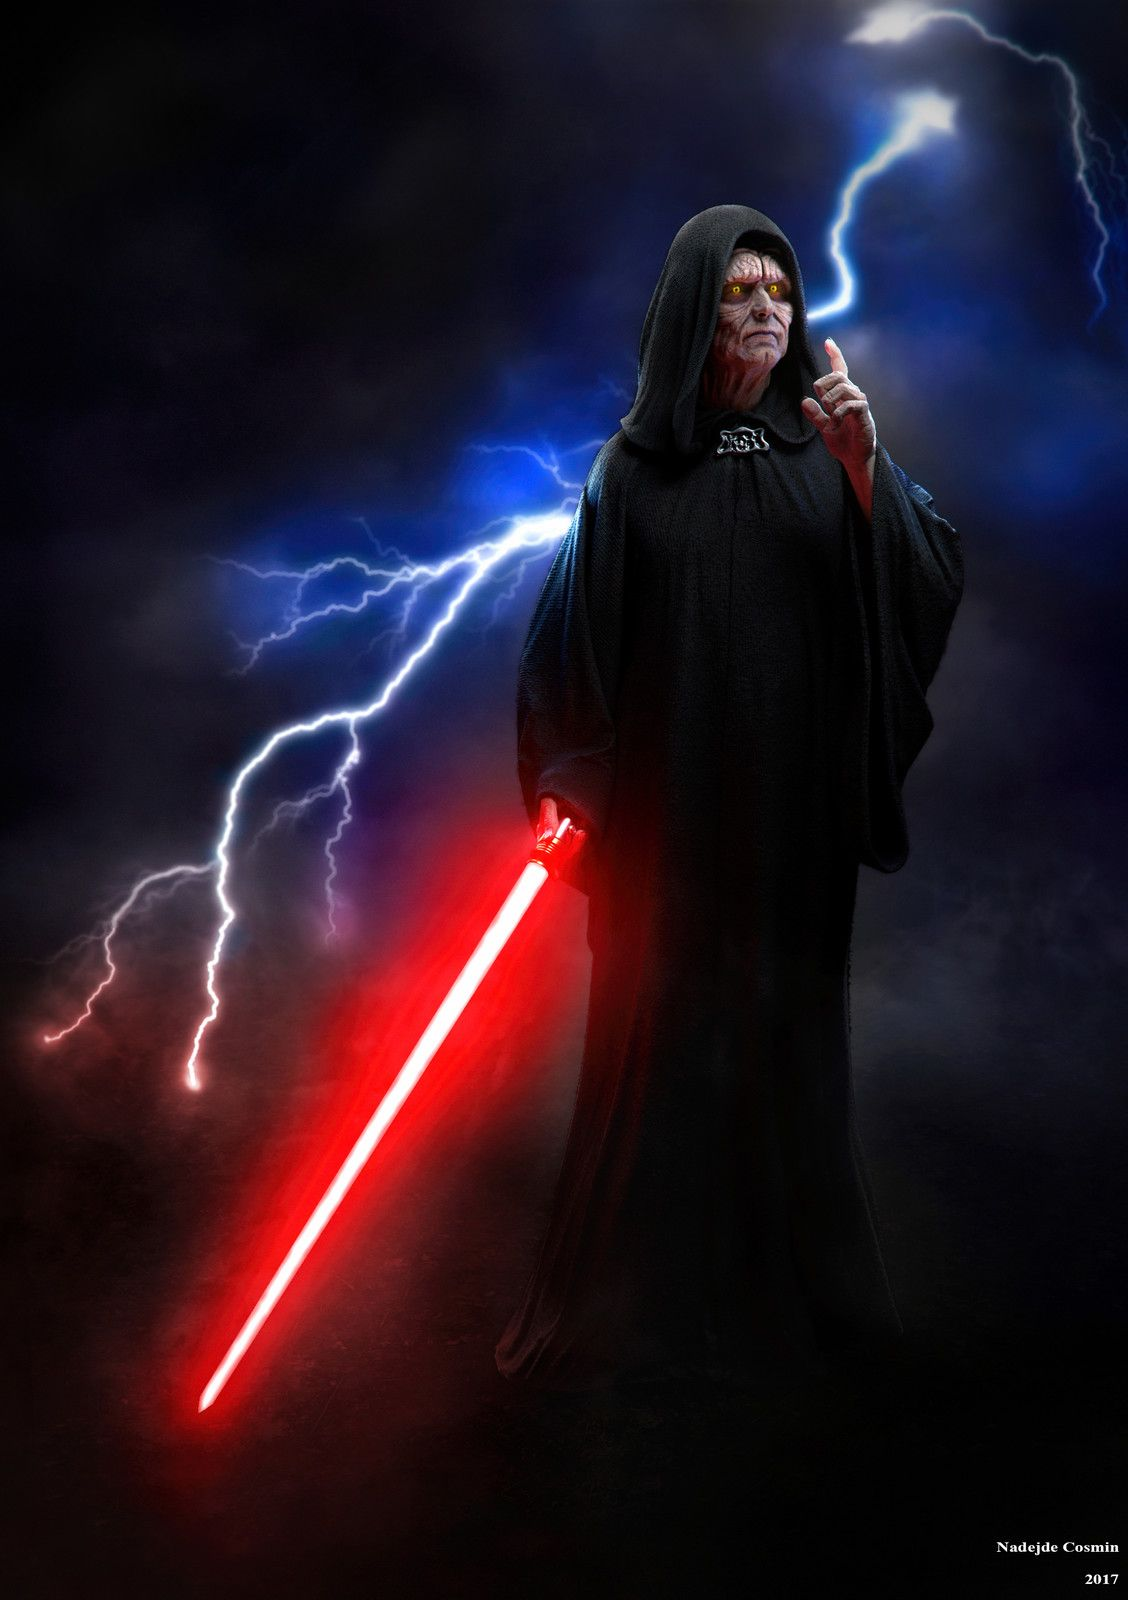 Dark Lord Of The Sith By Nadejde Cosmin On Artstation Dark Lord Of The Sith Dark Side Star Wars Star Wars Empire